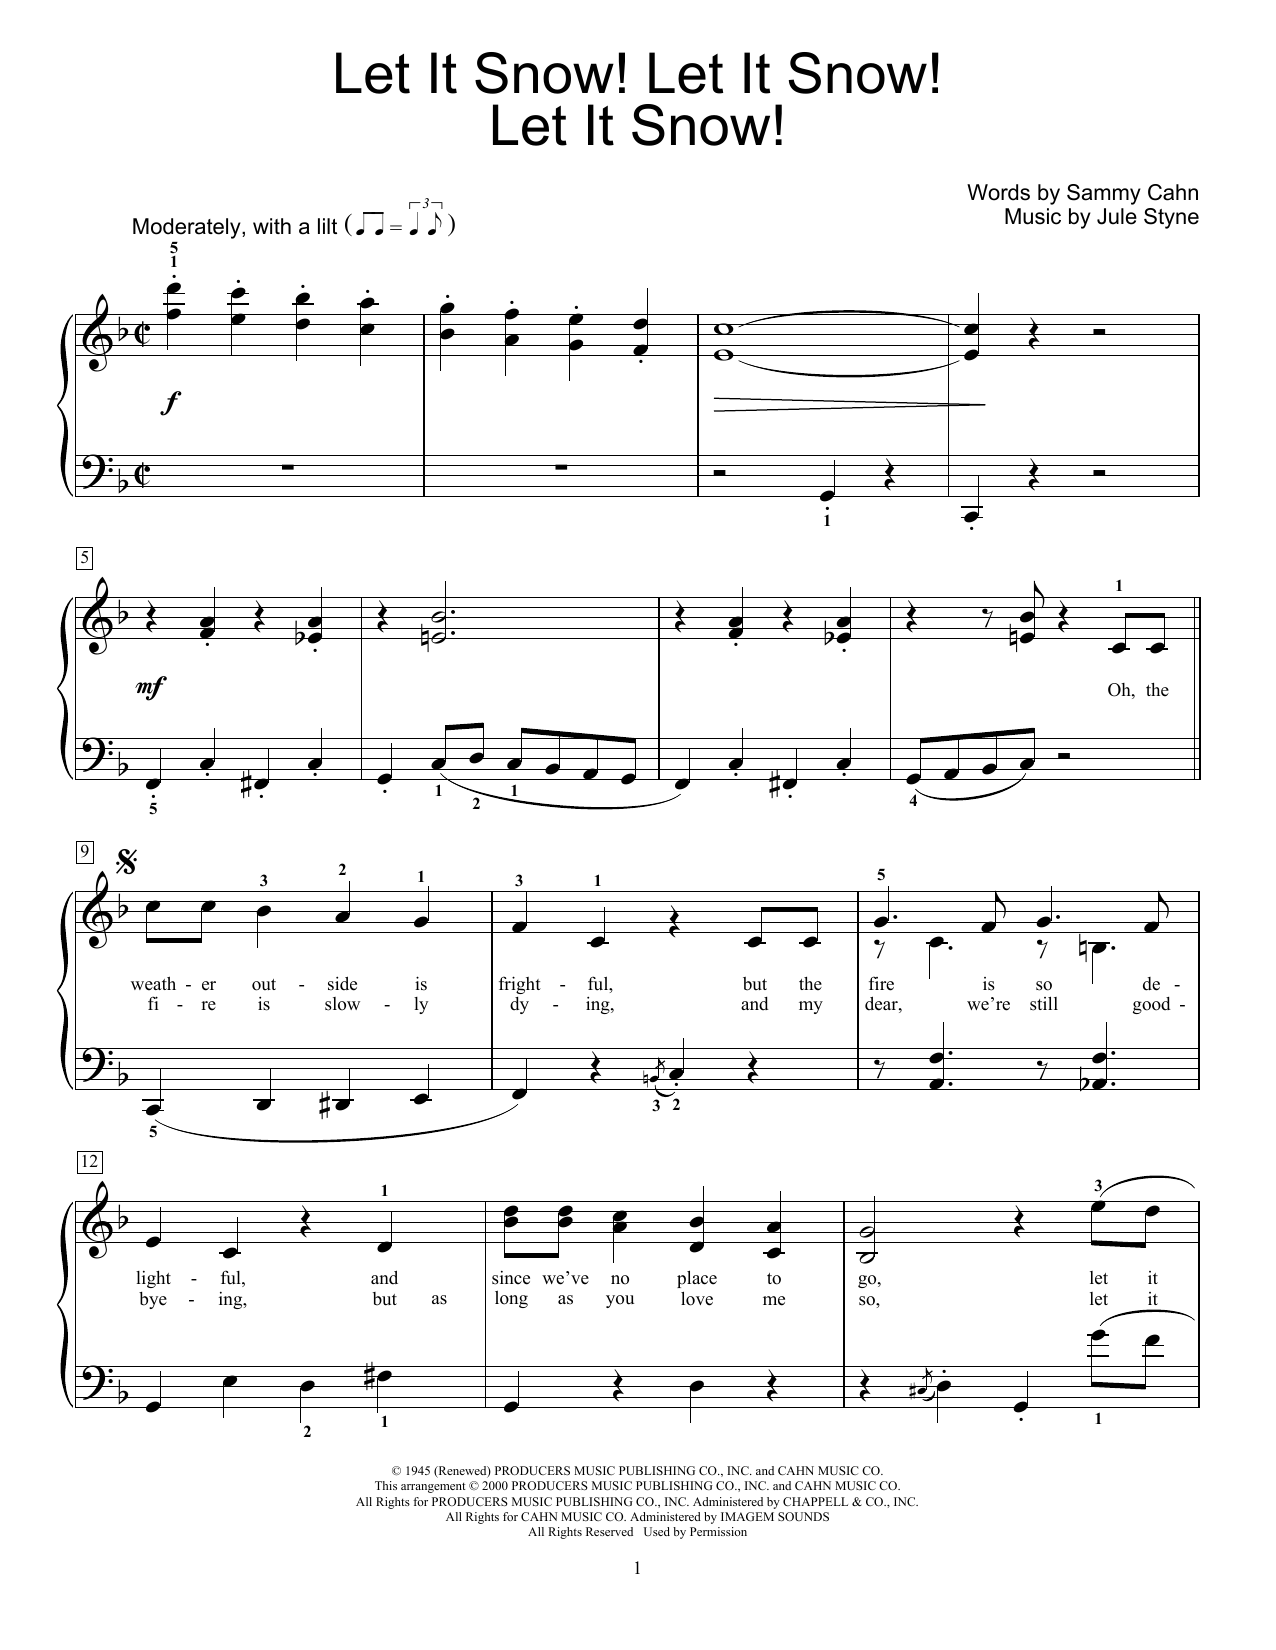 Jule Styne Let It Snow! Let It Snow! Let It Snow! sheet music notes and chords